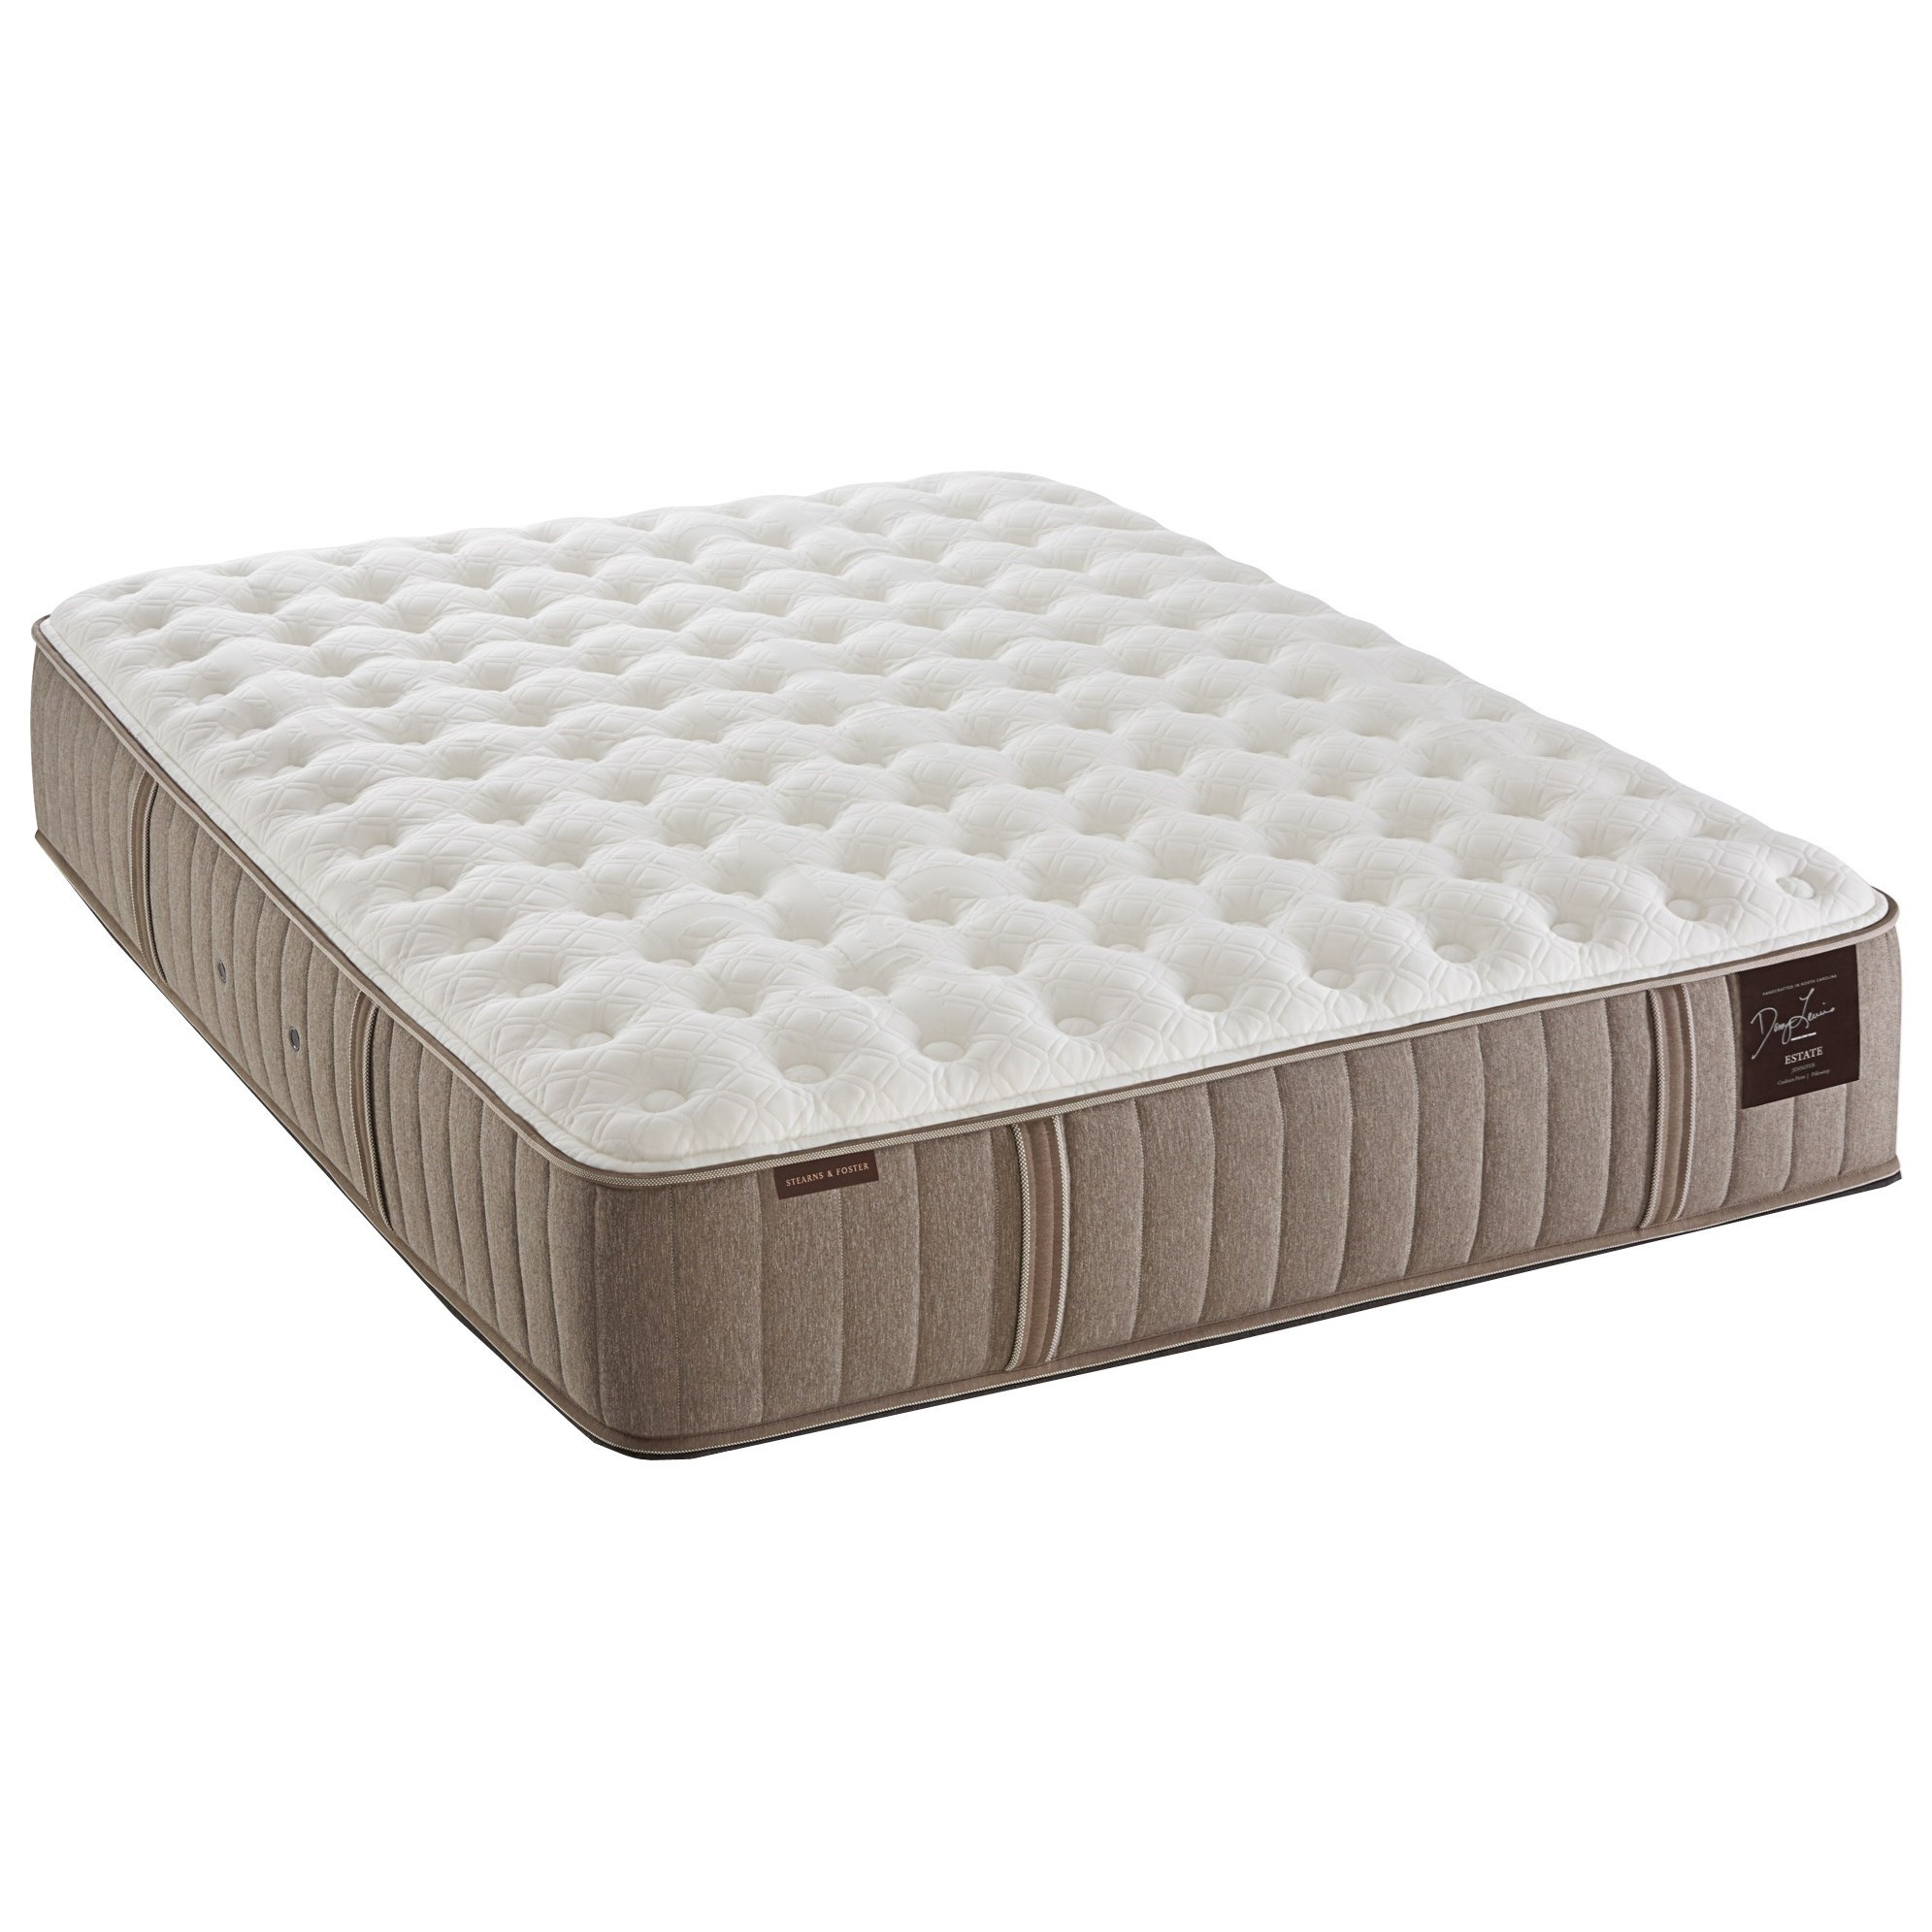 Stearns & Foster Scarborough Queen Firm Tight Top Mattress - Item Number: Firm-Q